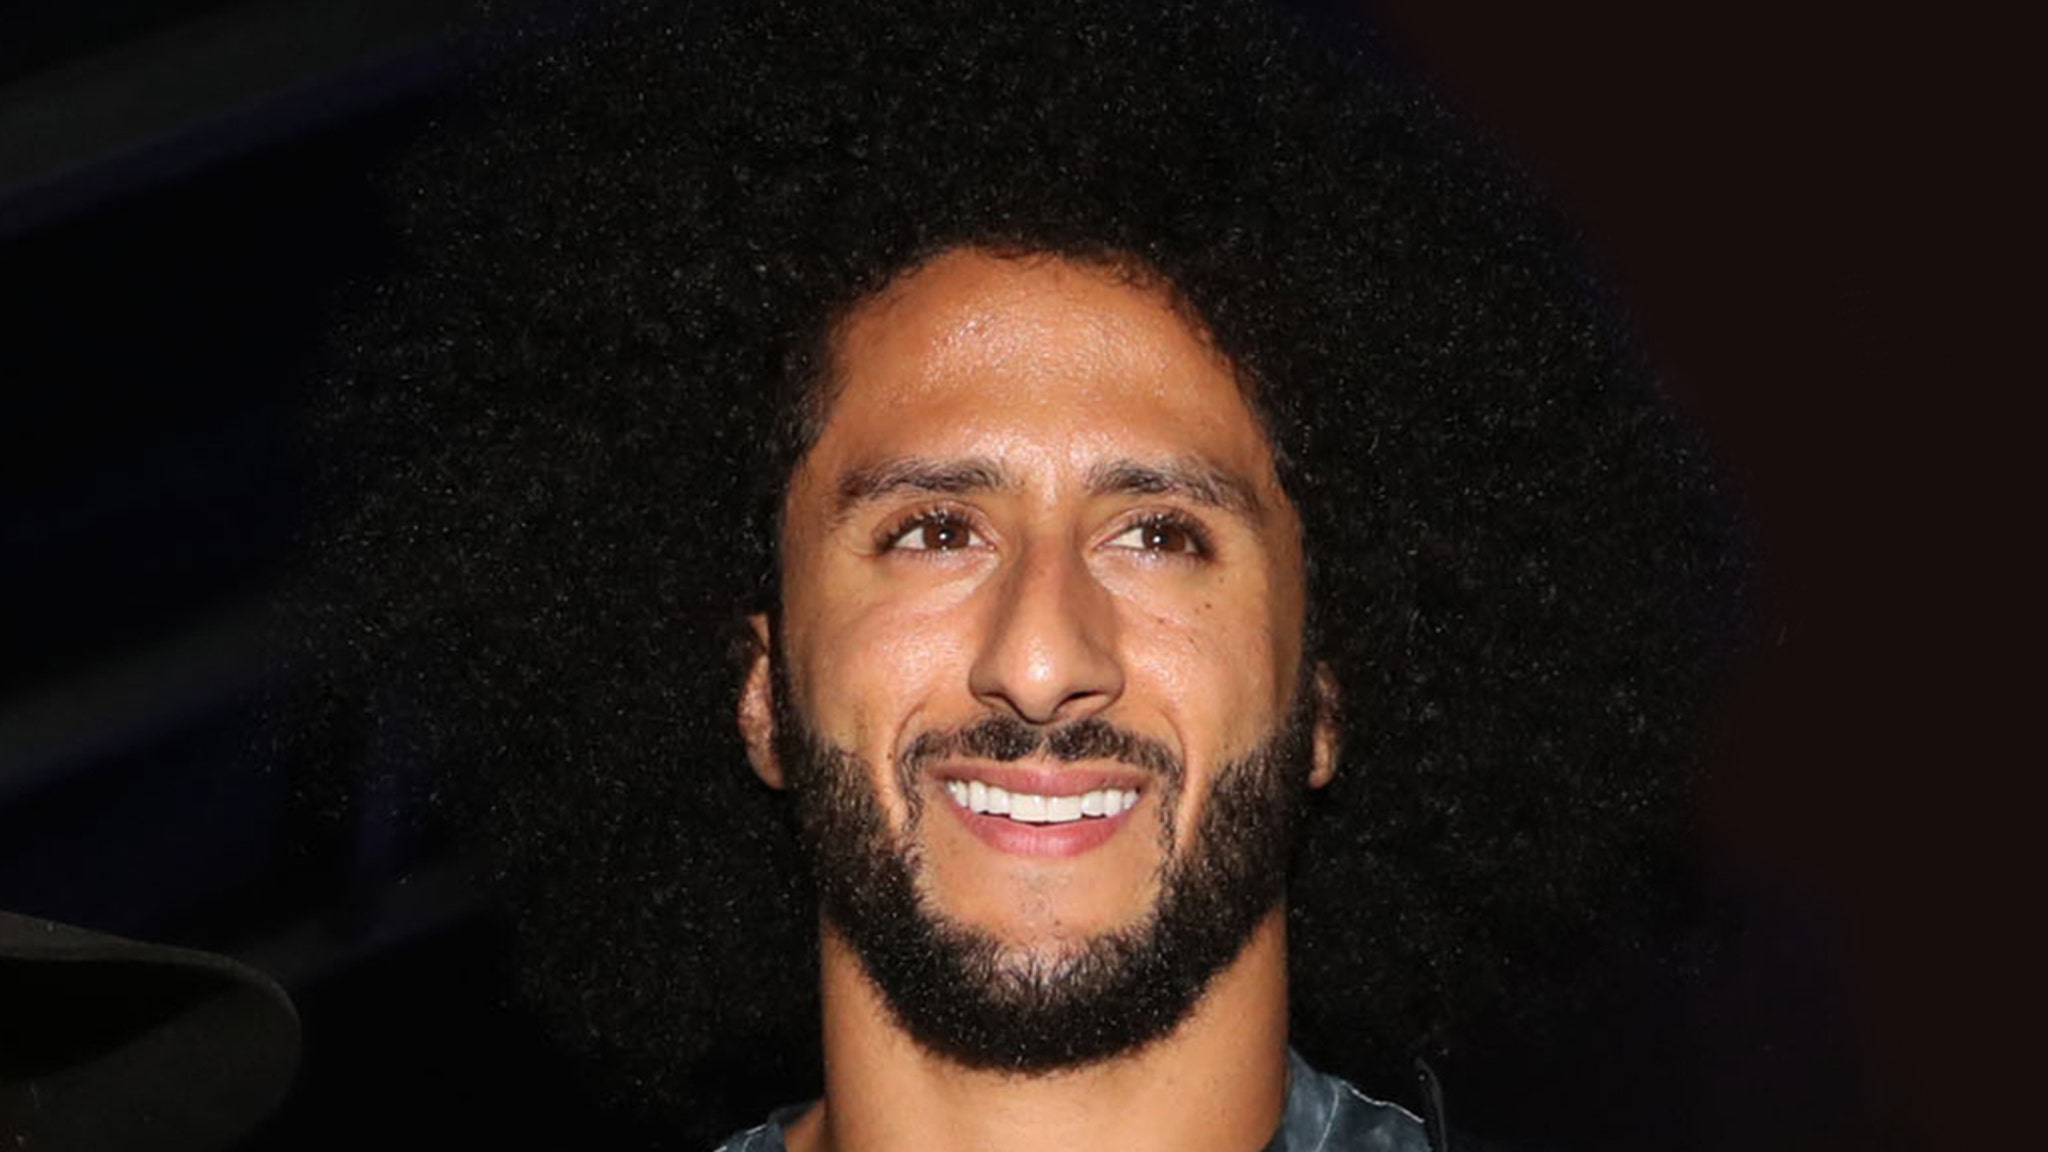 Colin Kaepernick On Workout, 'I'm Ready for This'